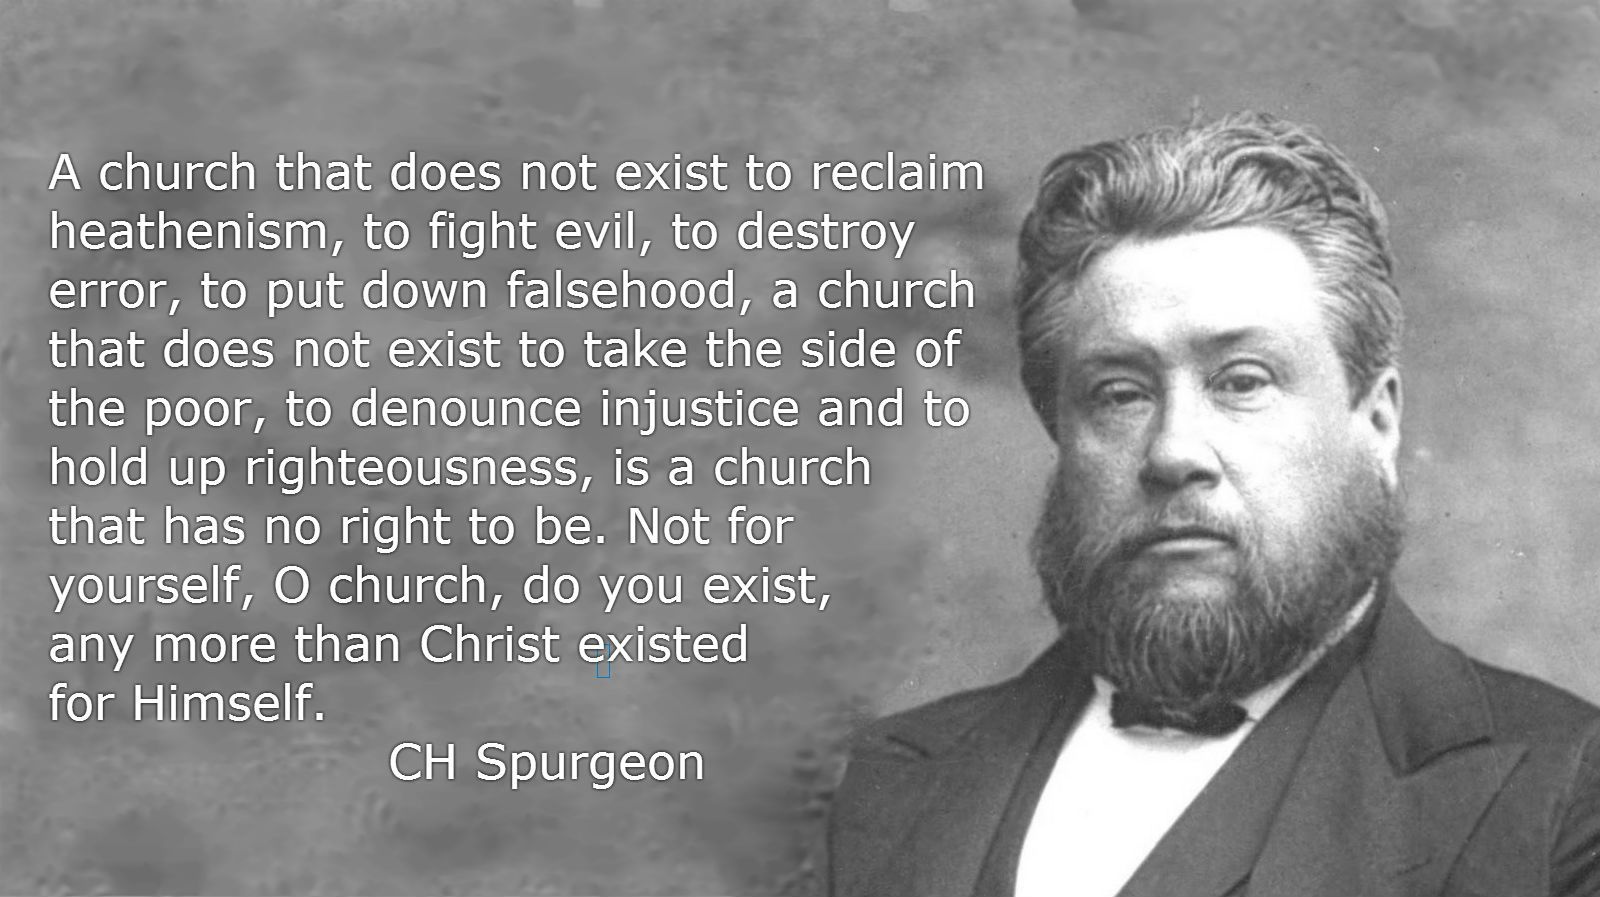 Spurgeon S Quote That The Church Should Behave Like The Church Spurgeon Quotes Isaiah 1 Isaiah